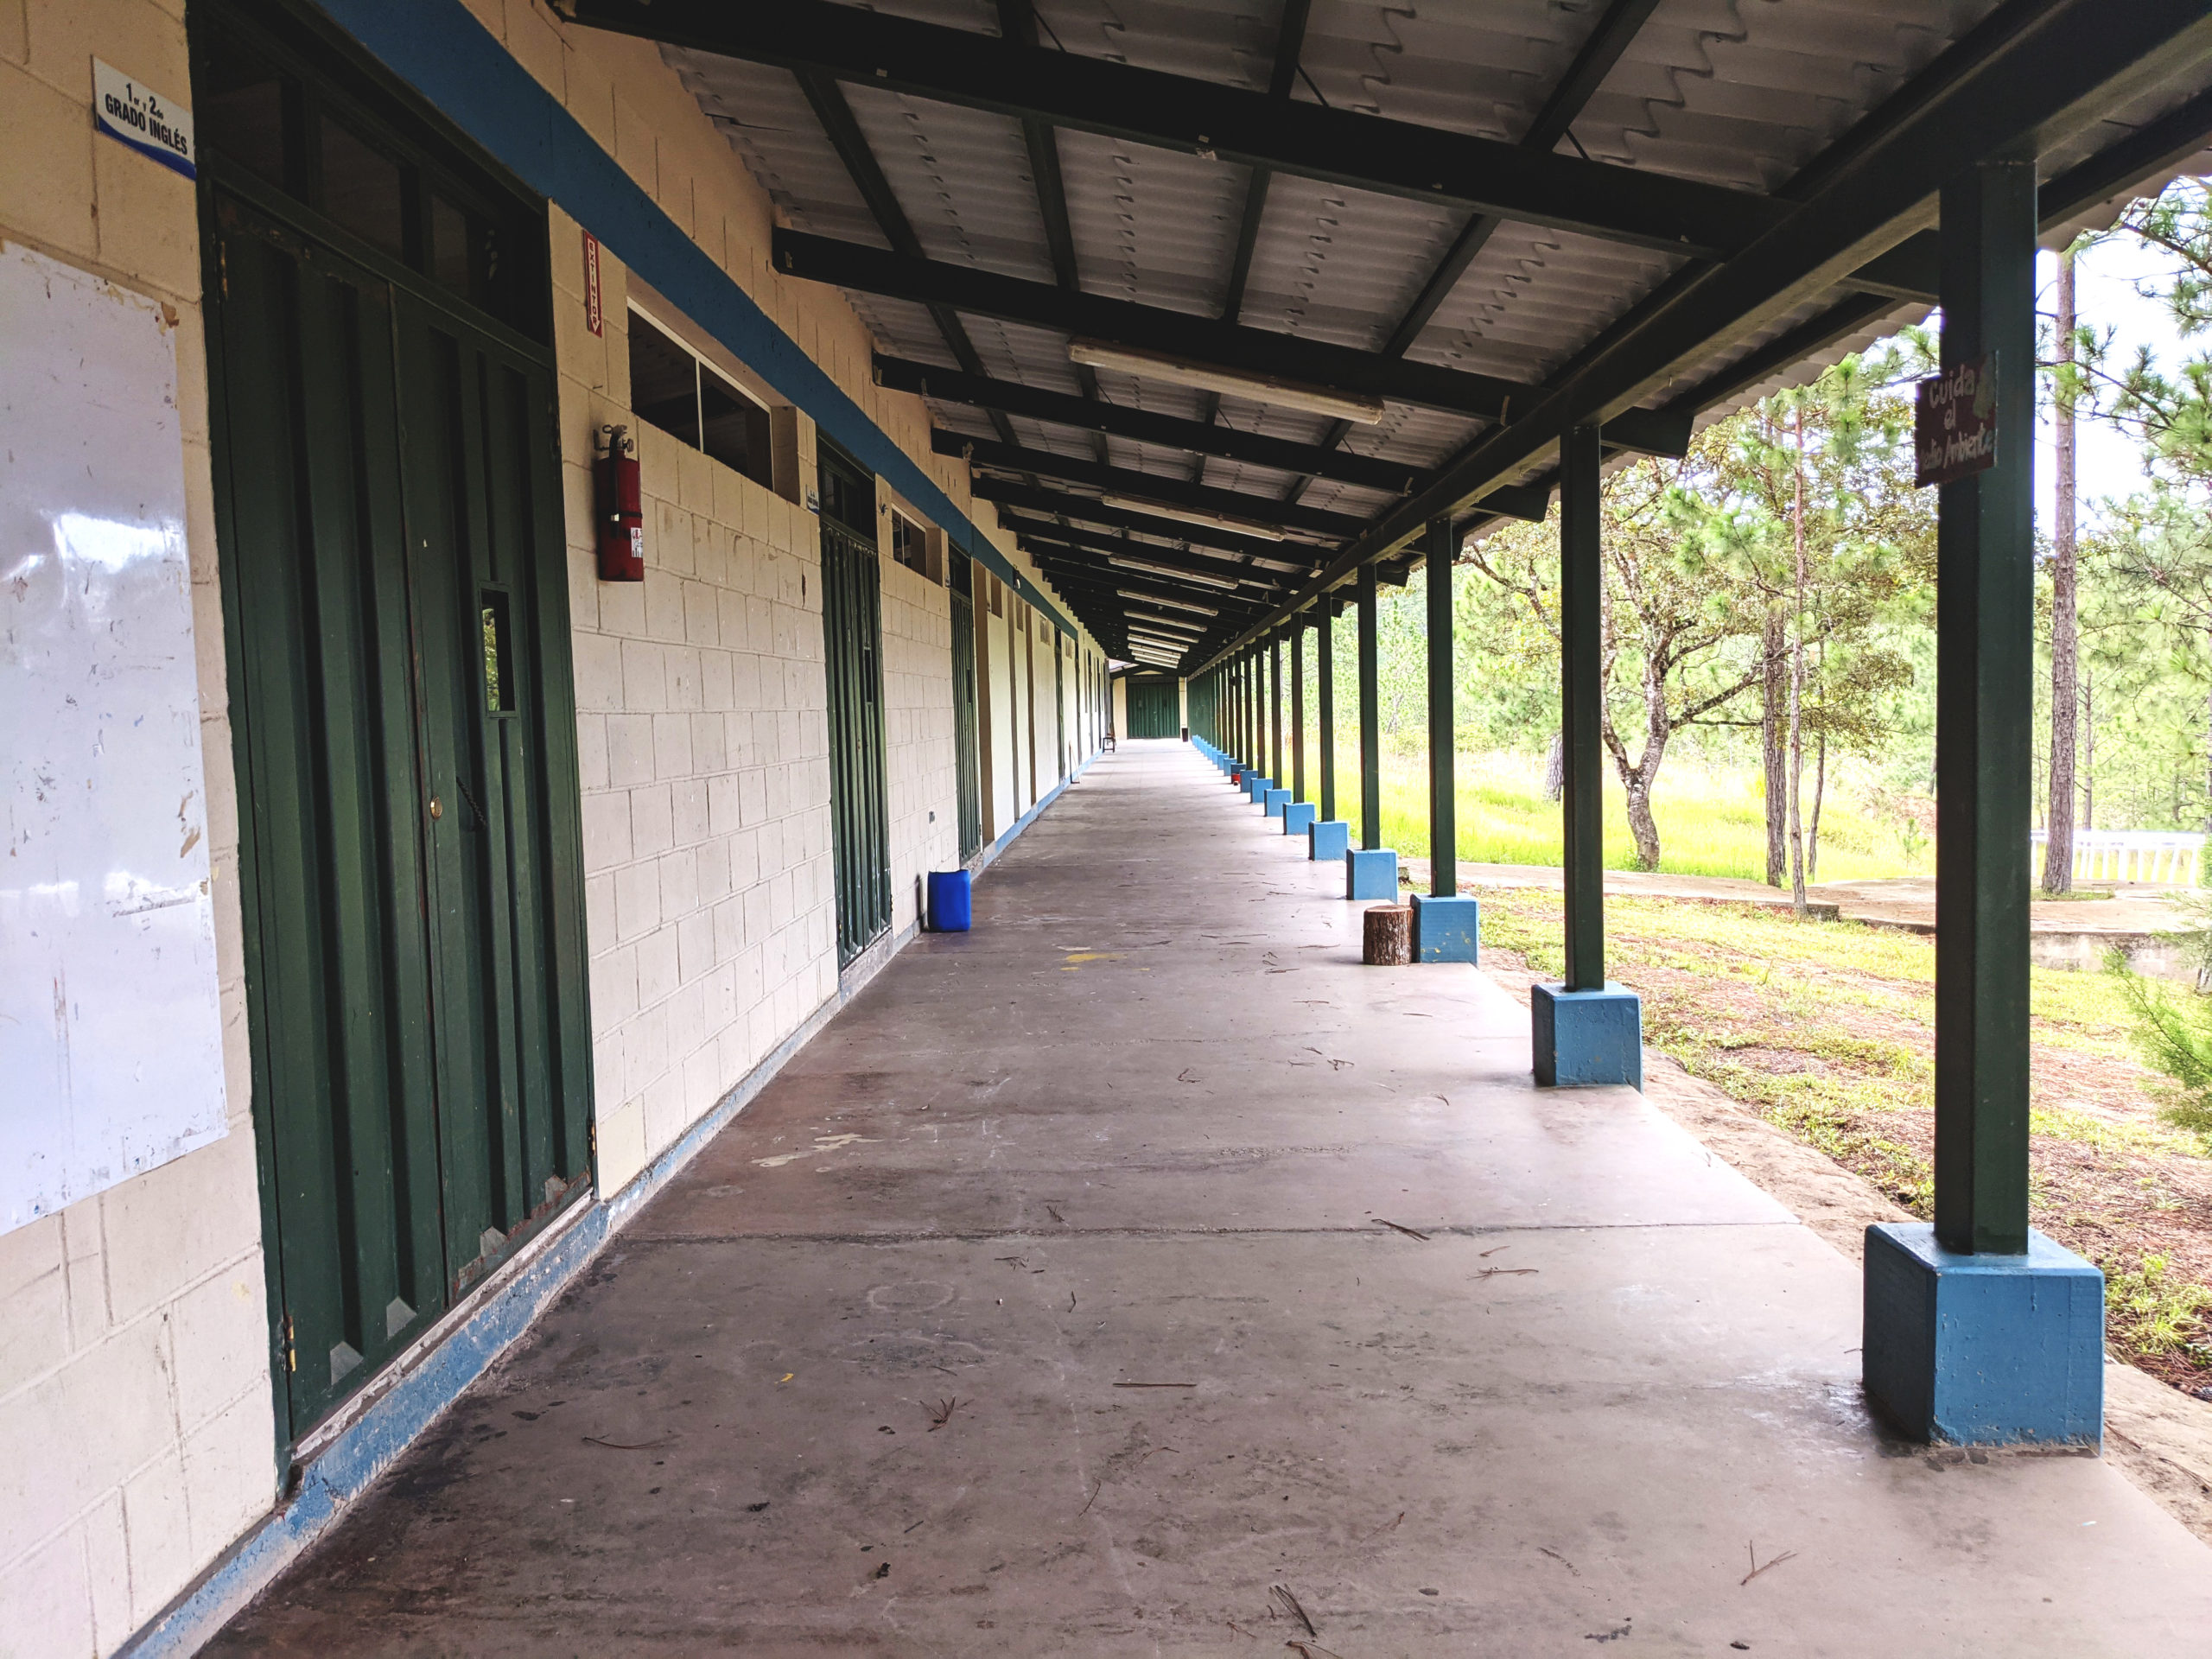 These halls soon be filled with students once the La Providencia school opens!